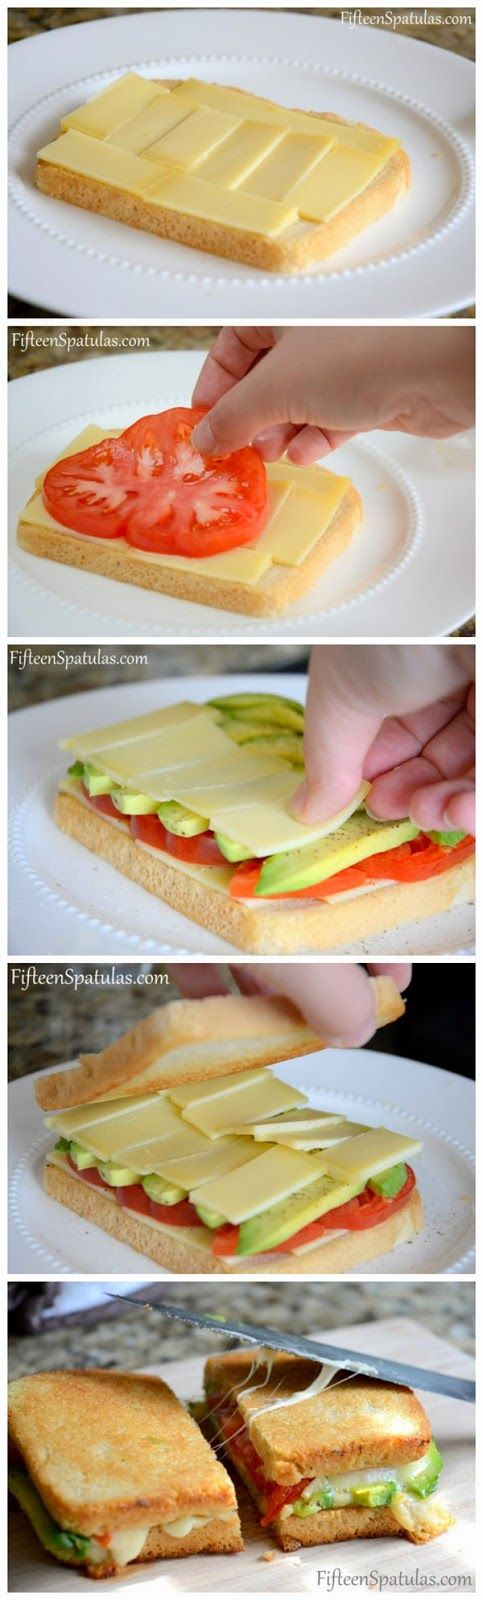 Grilled Cheese with Avocado and Heirloom Tomato - Eattags